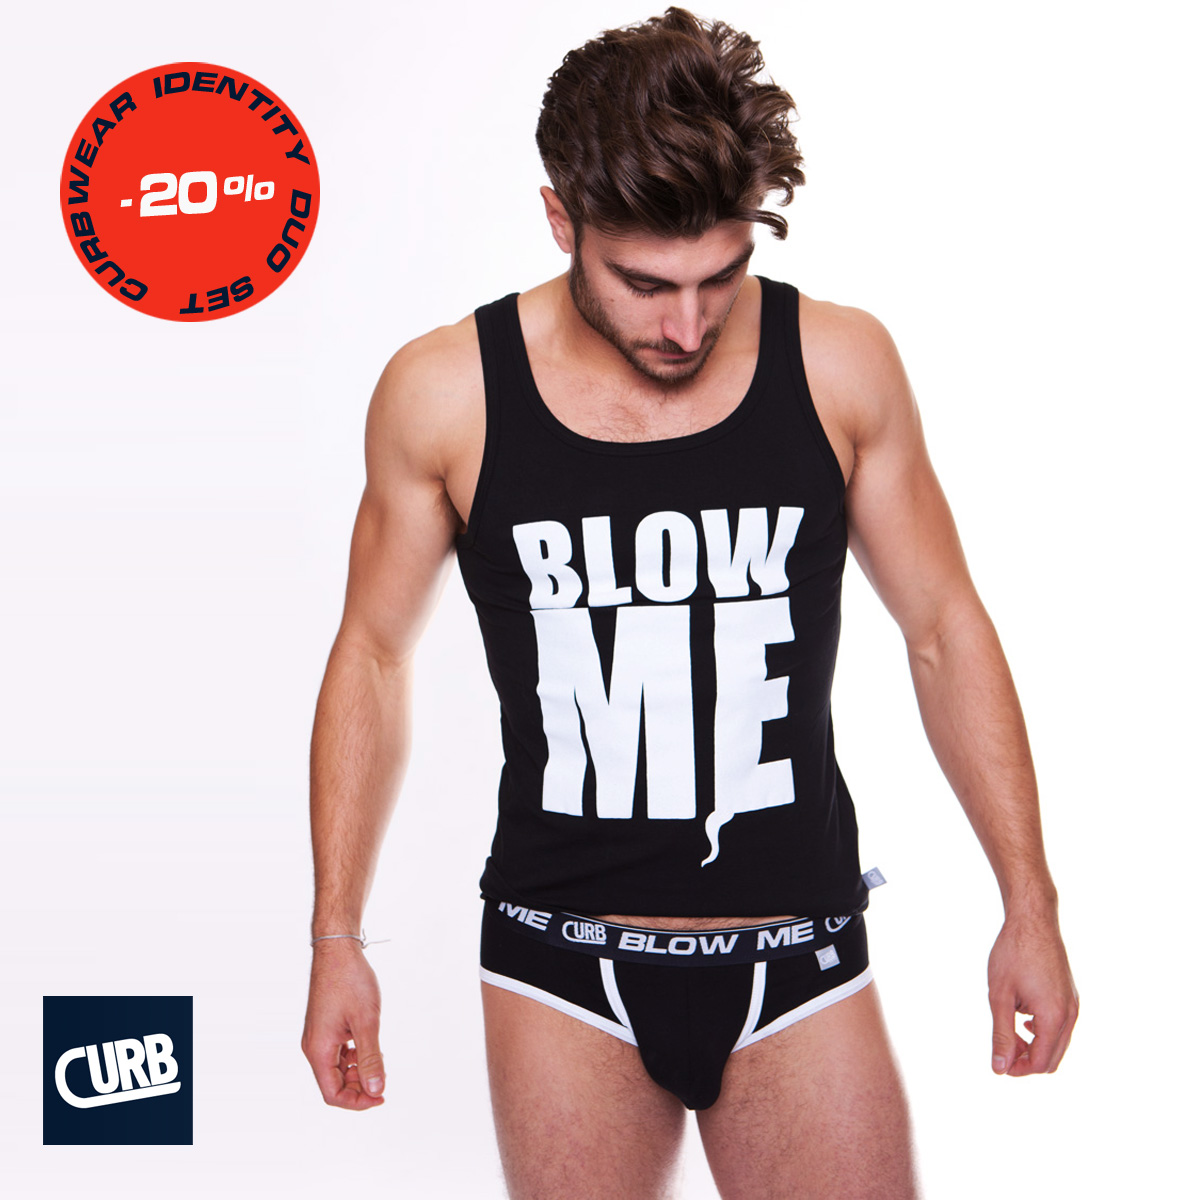 curbwear-blow-duo